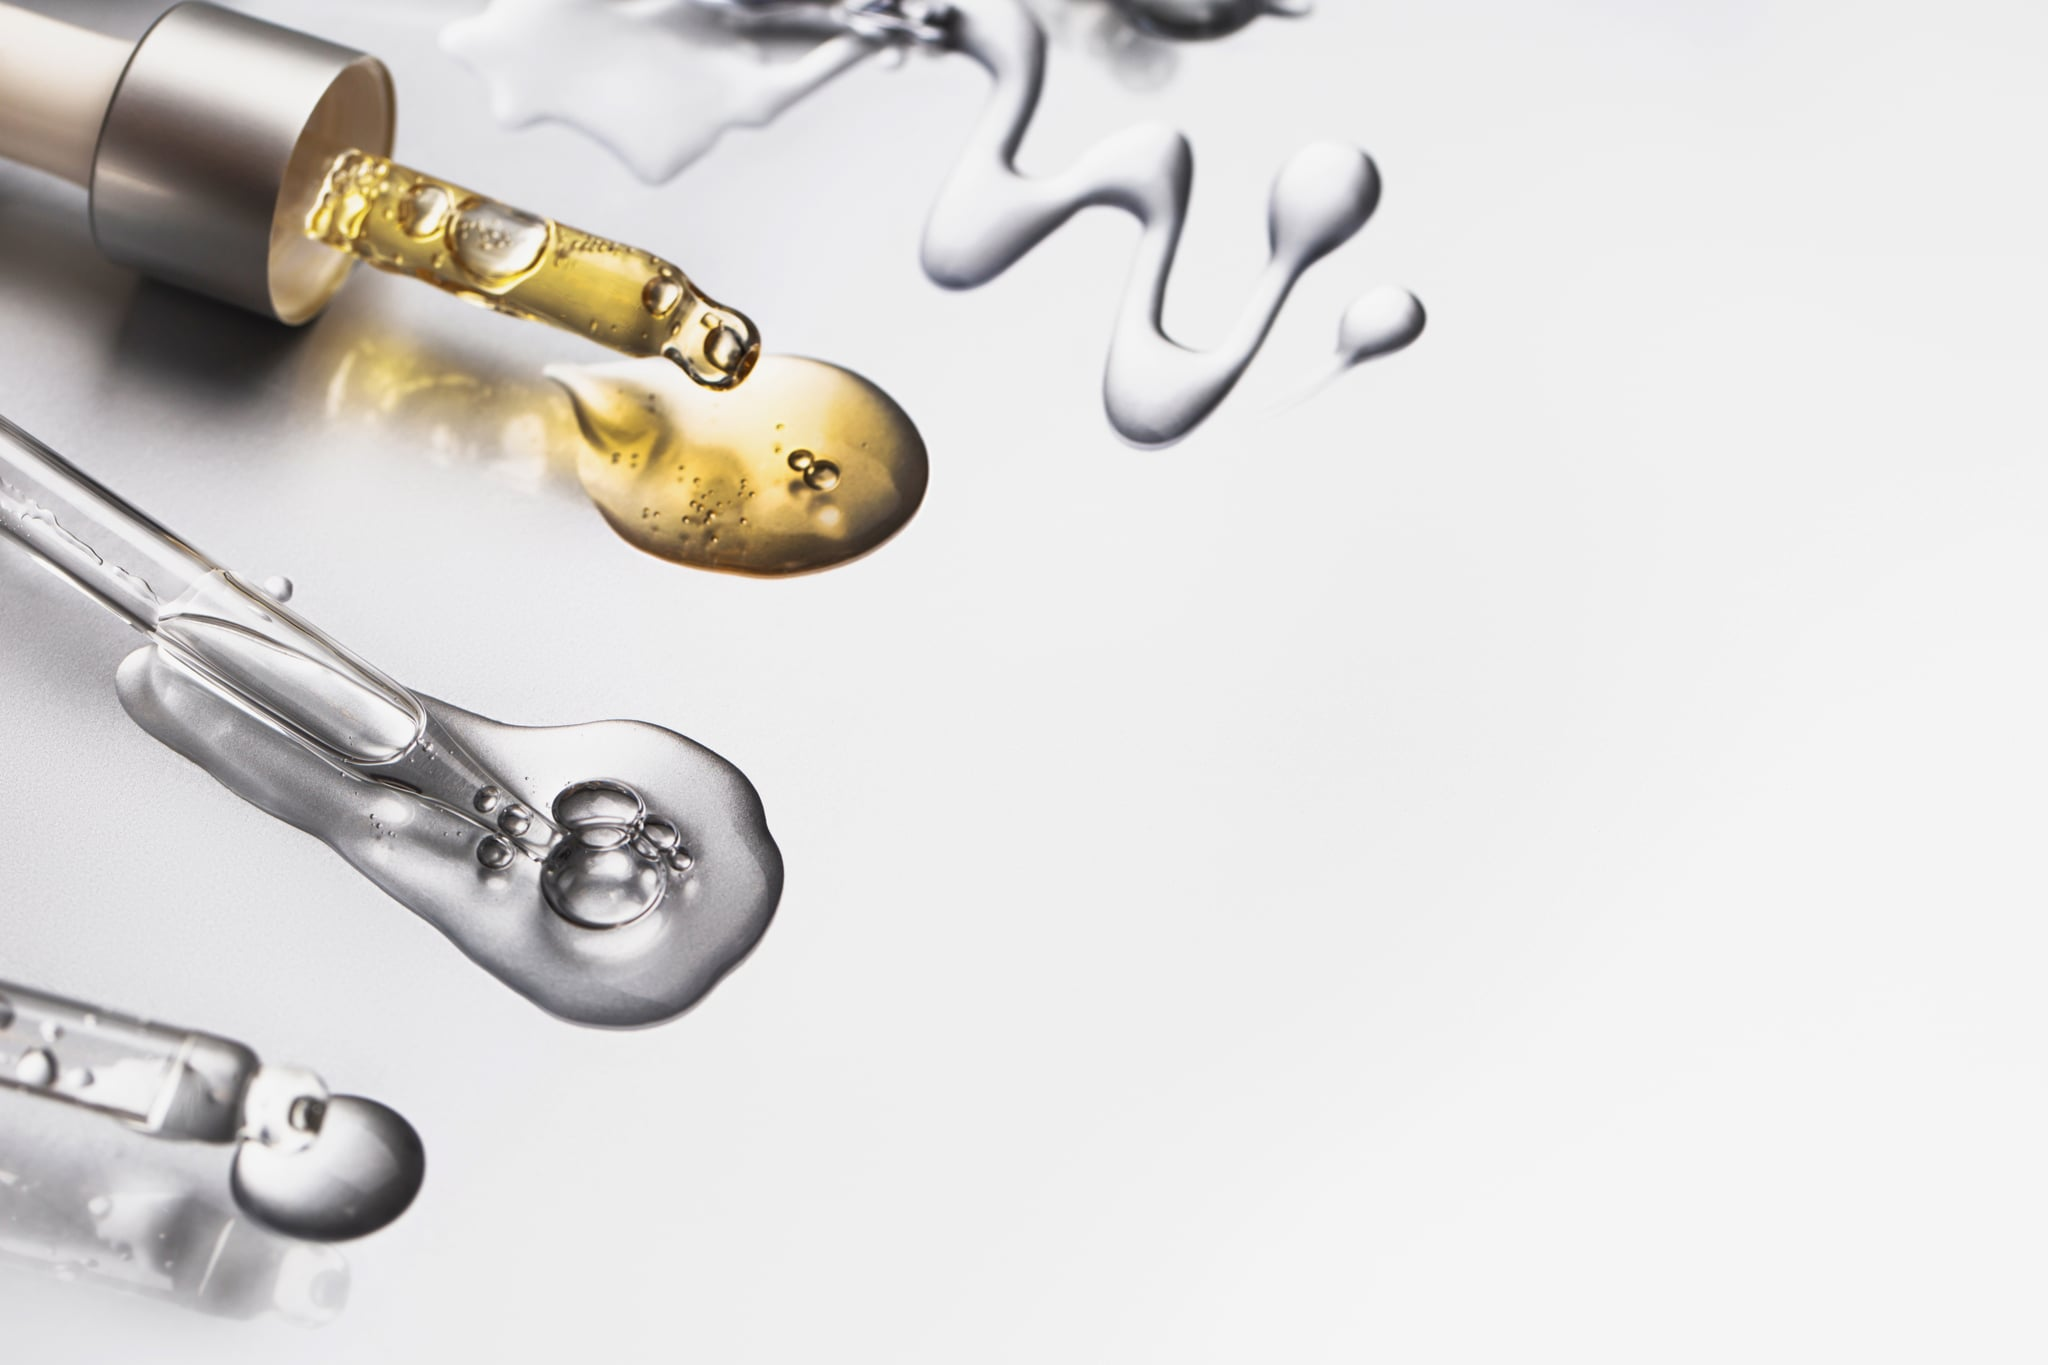 Group of pipettes with serum and oil on luxury silver background